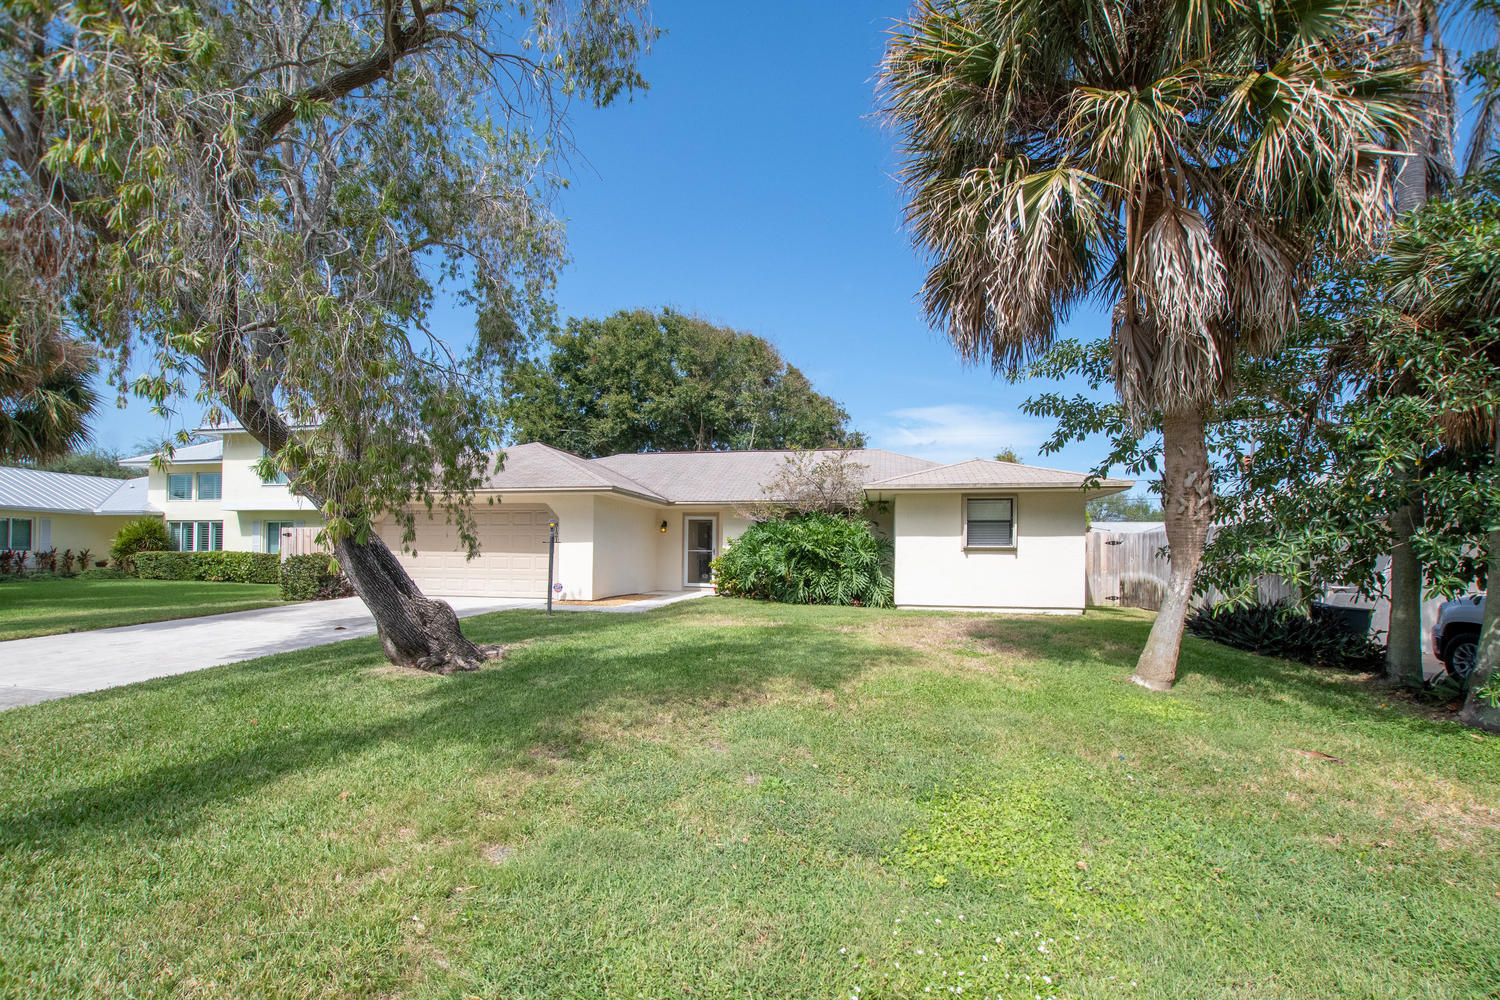 Photo of 8121 SE Helen Terrace, Hobe Sound, FL 33455